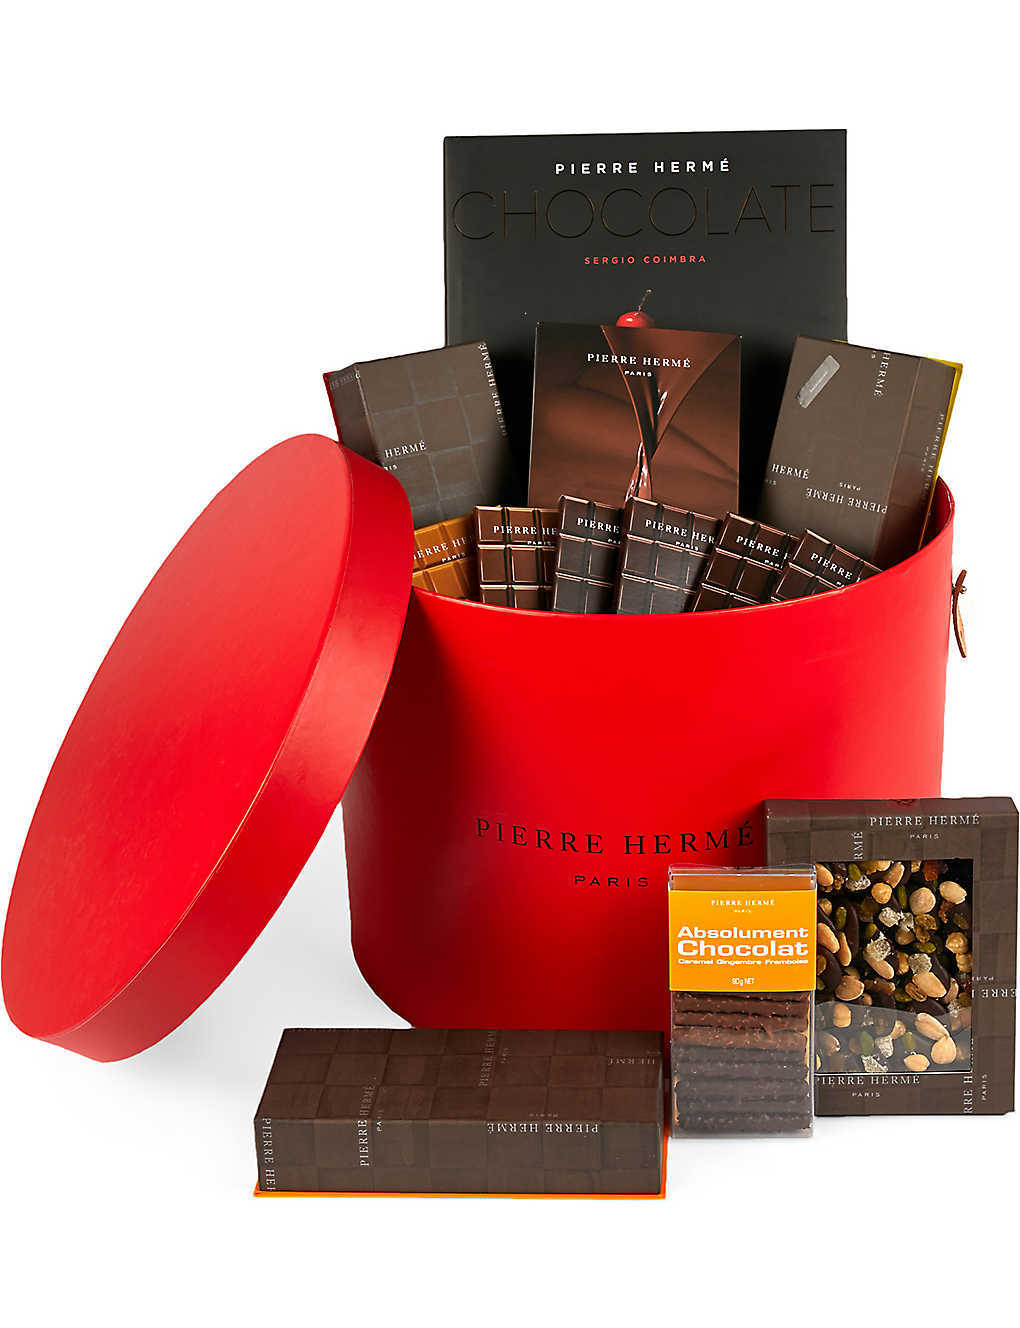 PIERRE HERME - 365 Ways To Love Chocolate: Monts